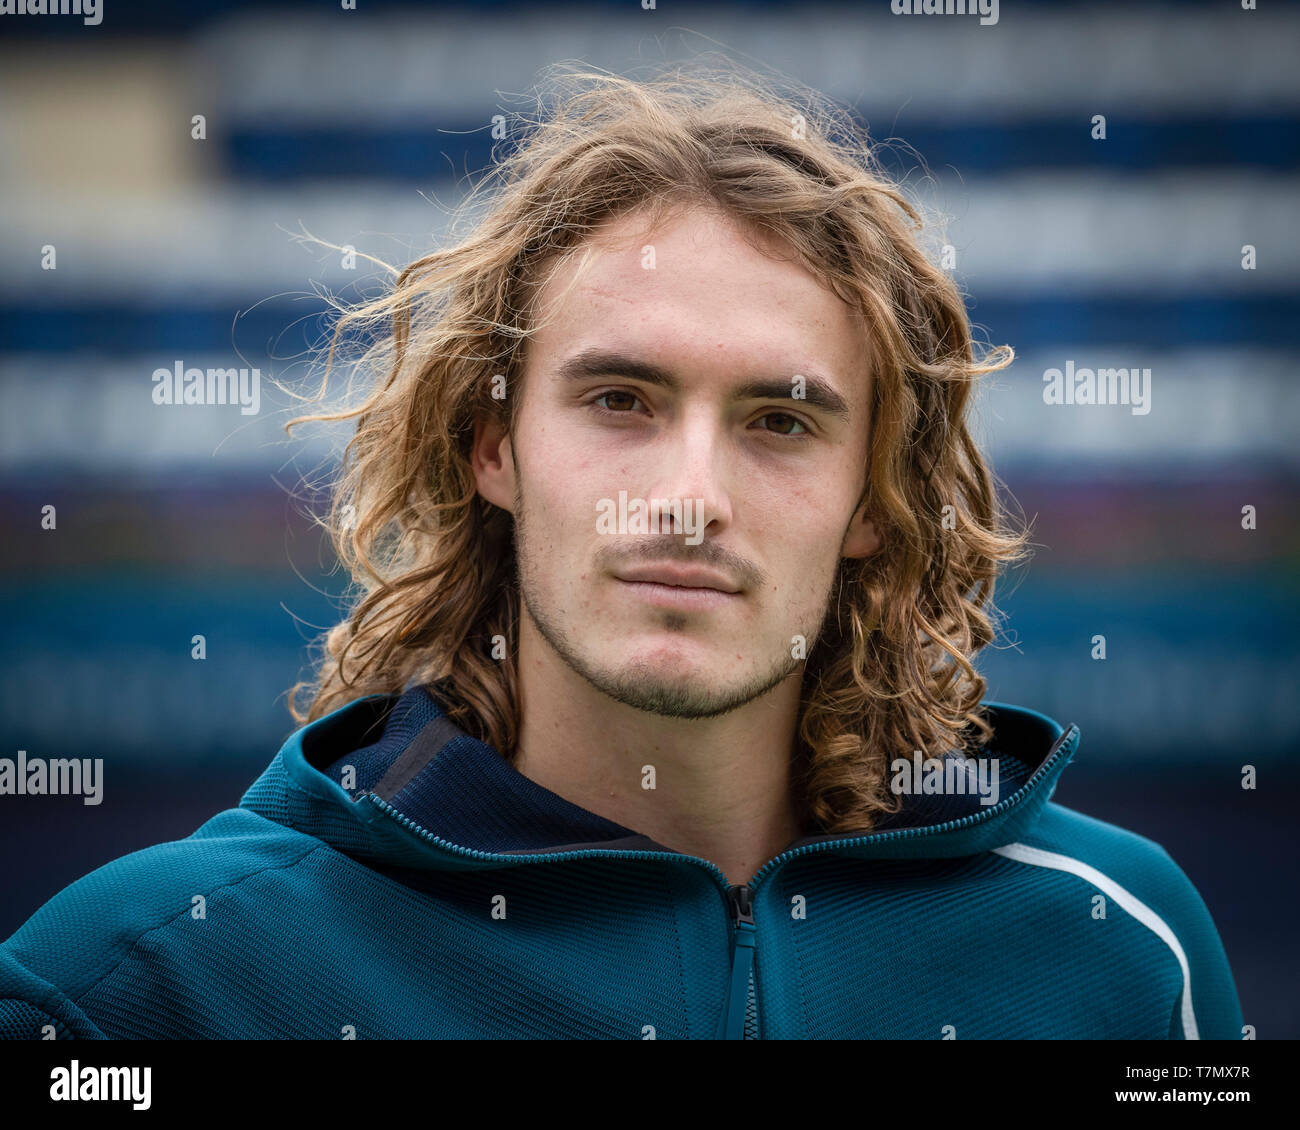 Portrait of Greek tennis player Stefanos Tsitsipas, Dubai, United Arab Emirates - Stock Image